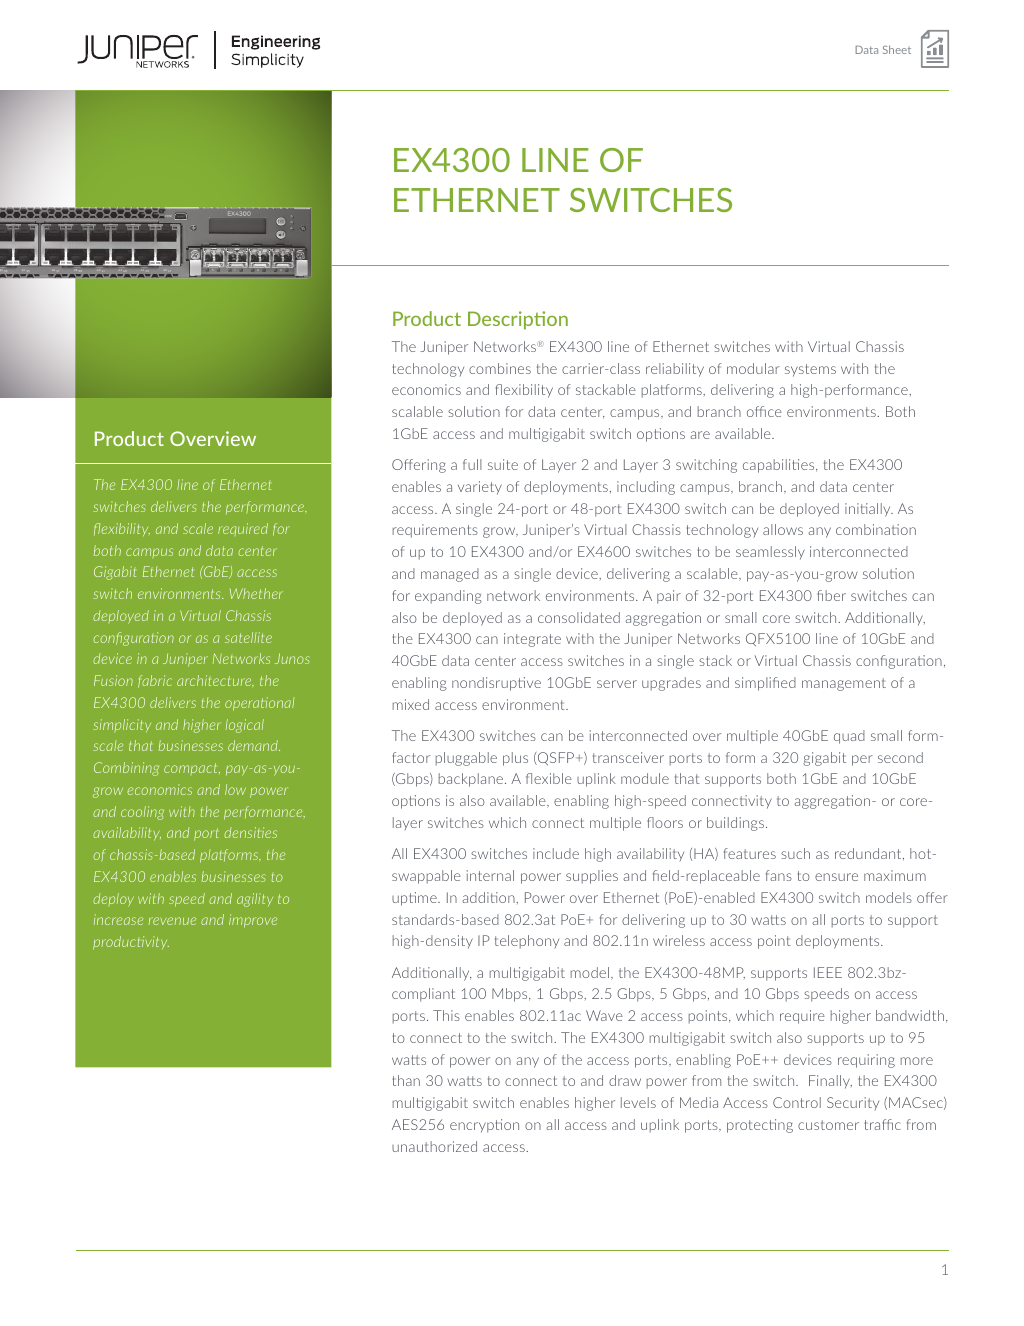 Data Sheet: EX4300 Line of Ethernet Switches